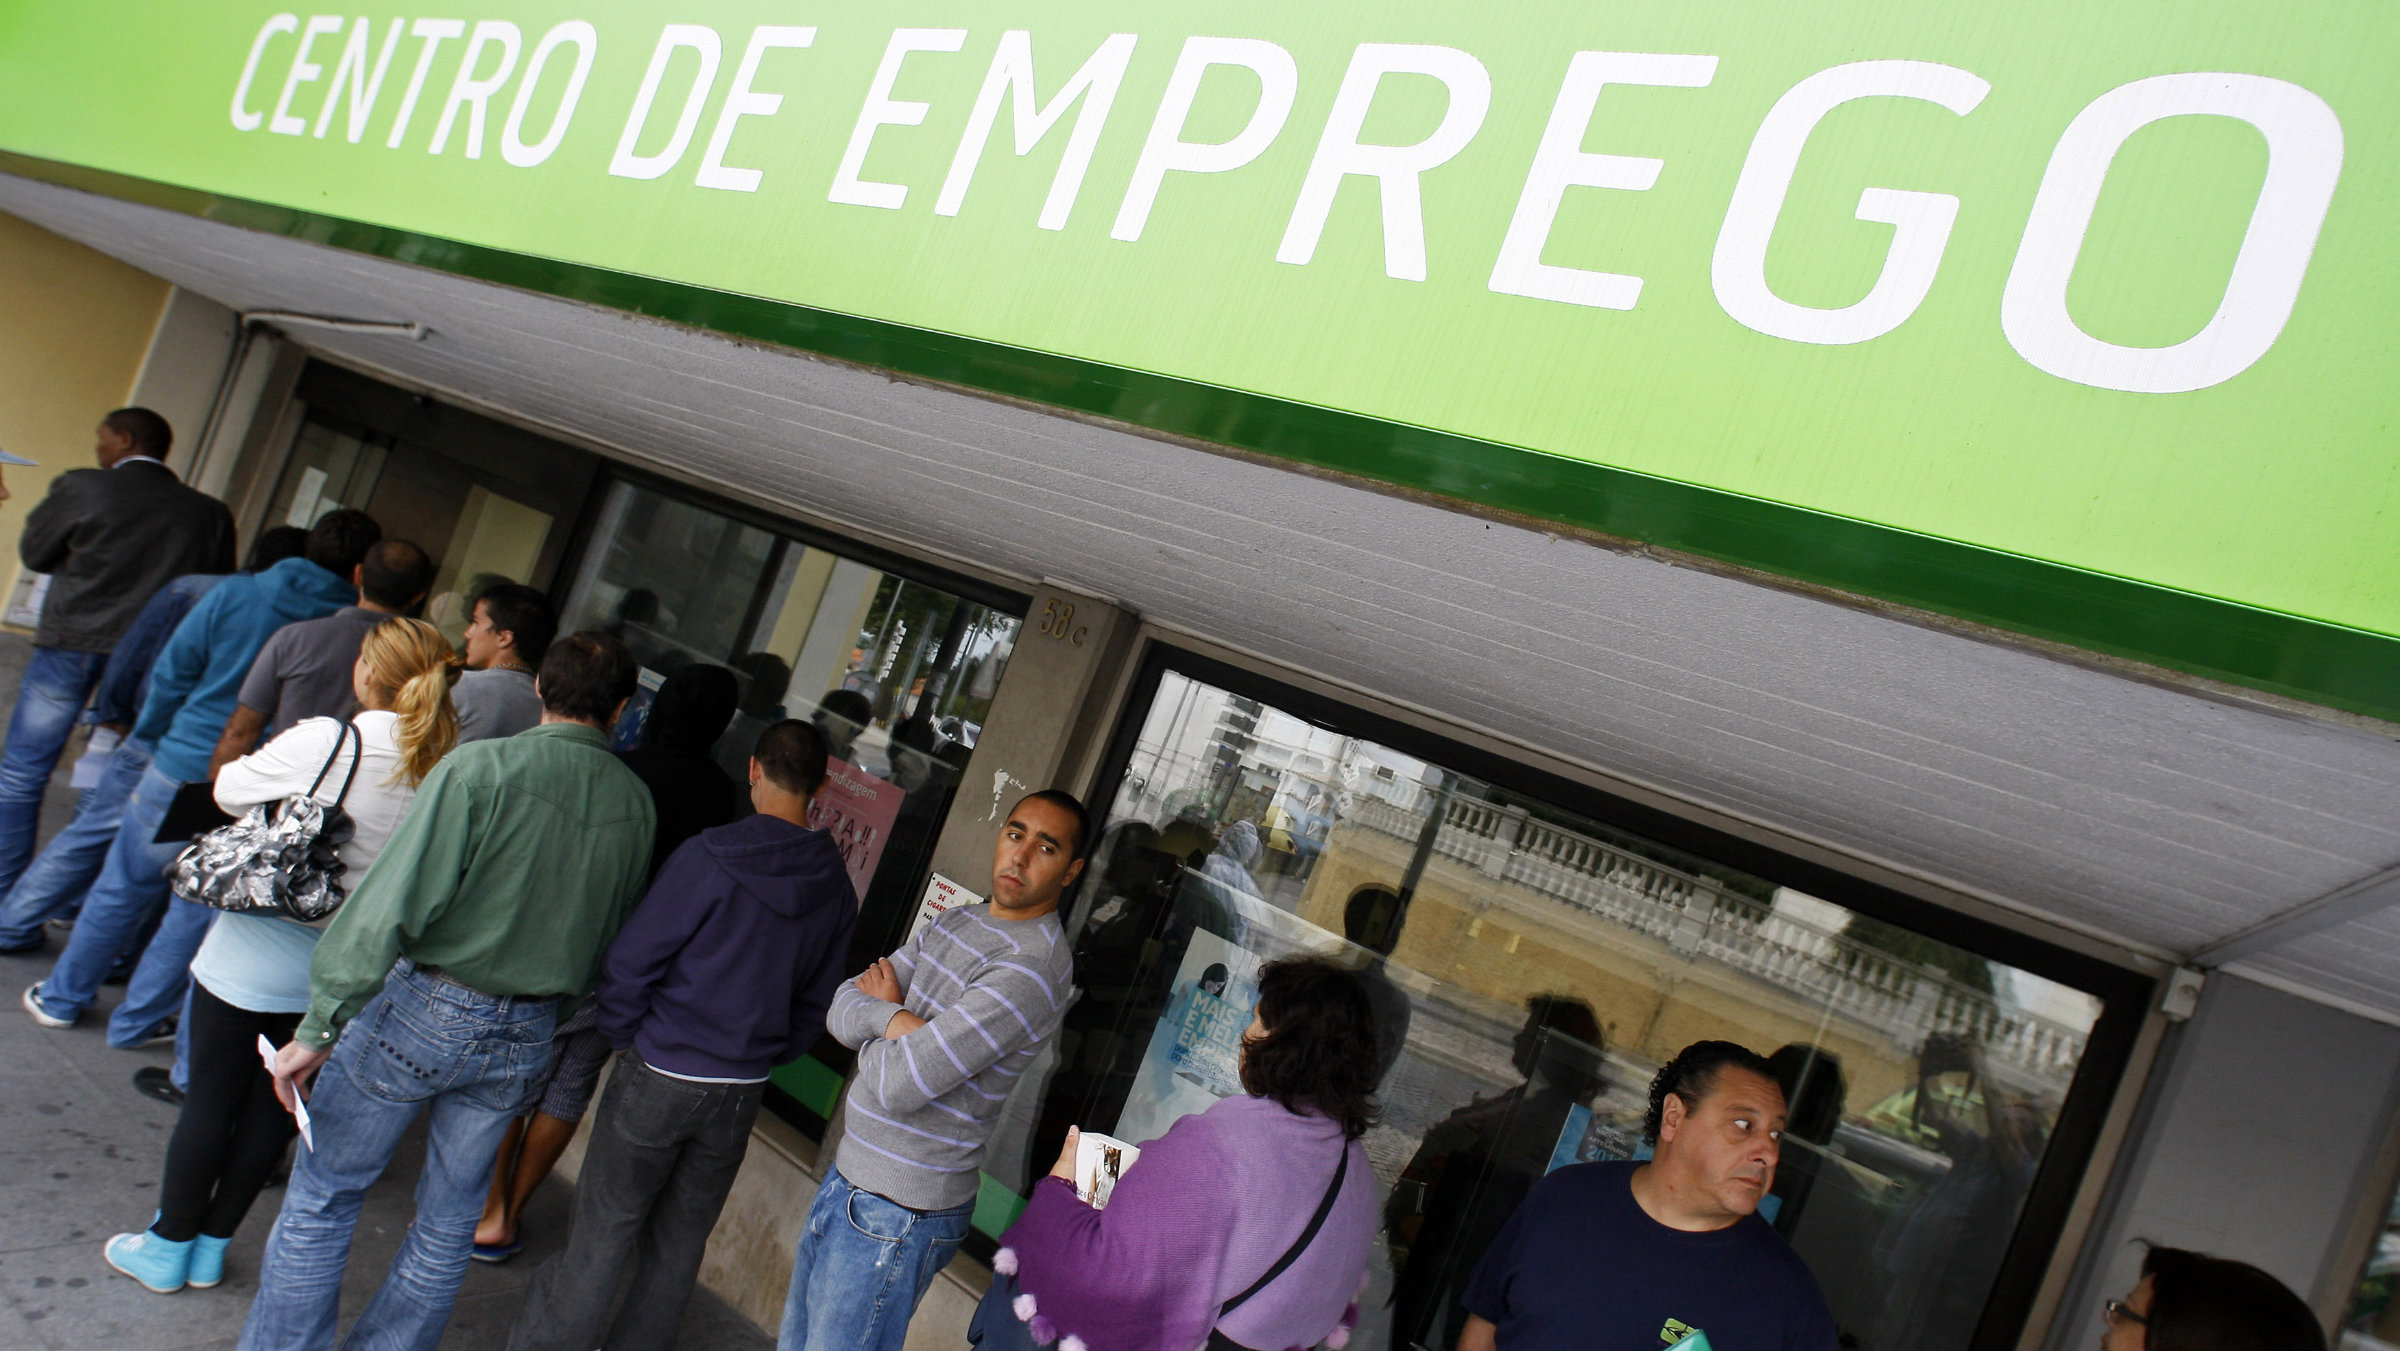 The lines at unemployment offices in Portugal are not quite as long.